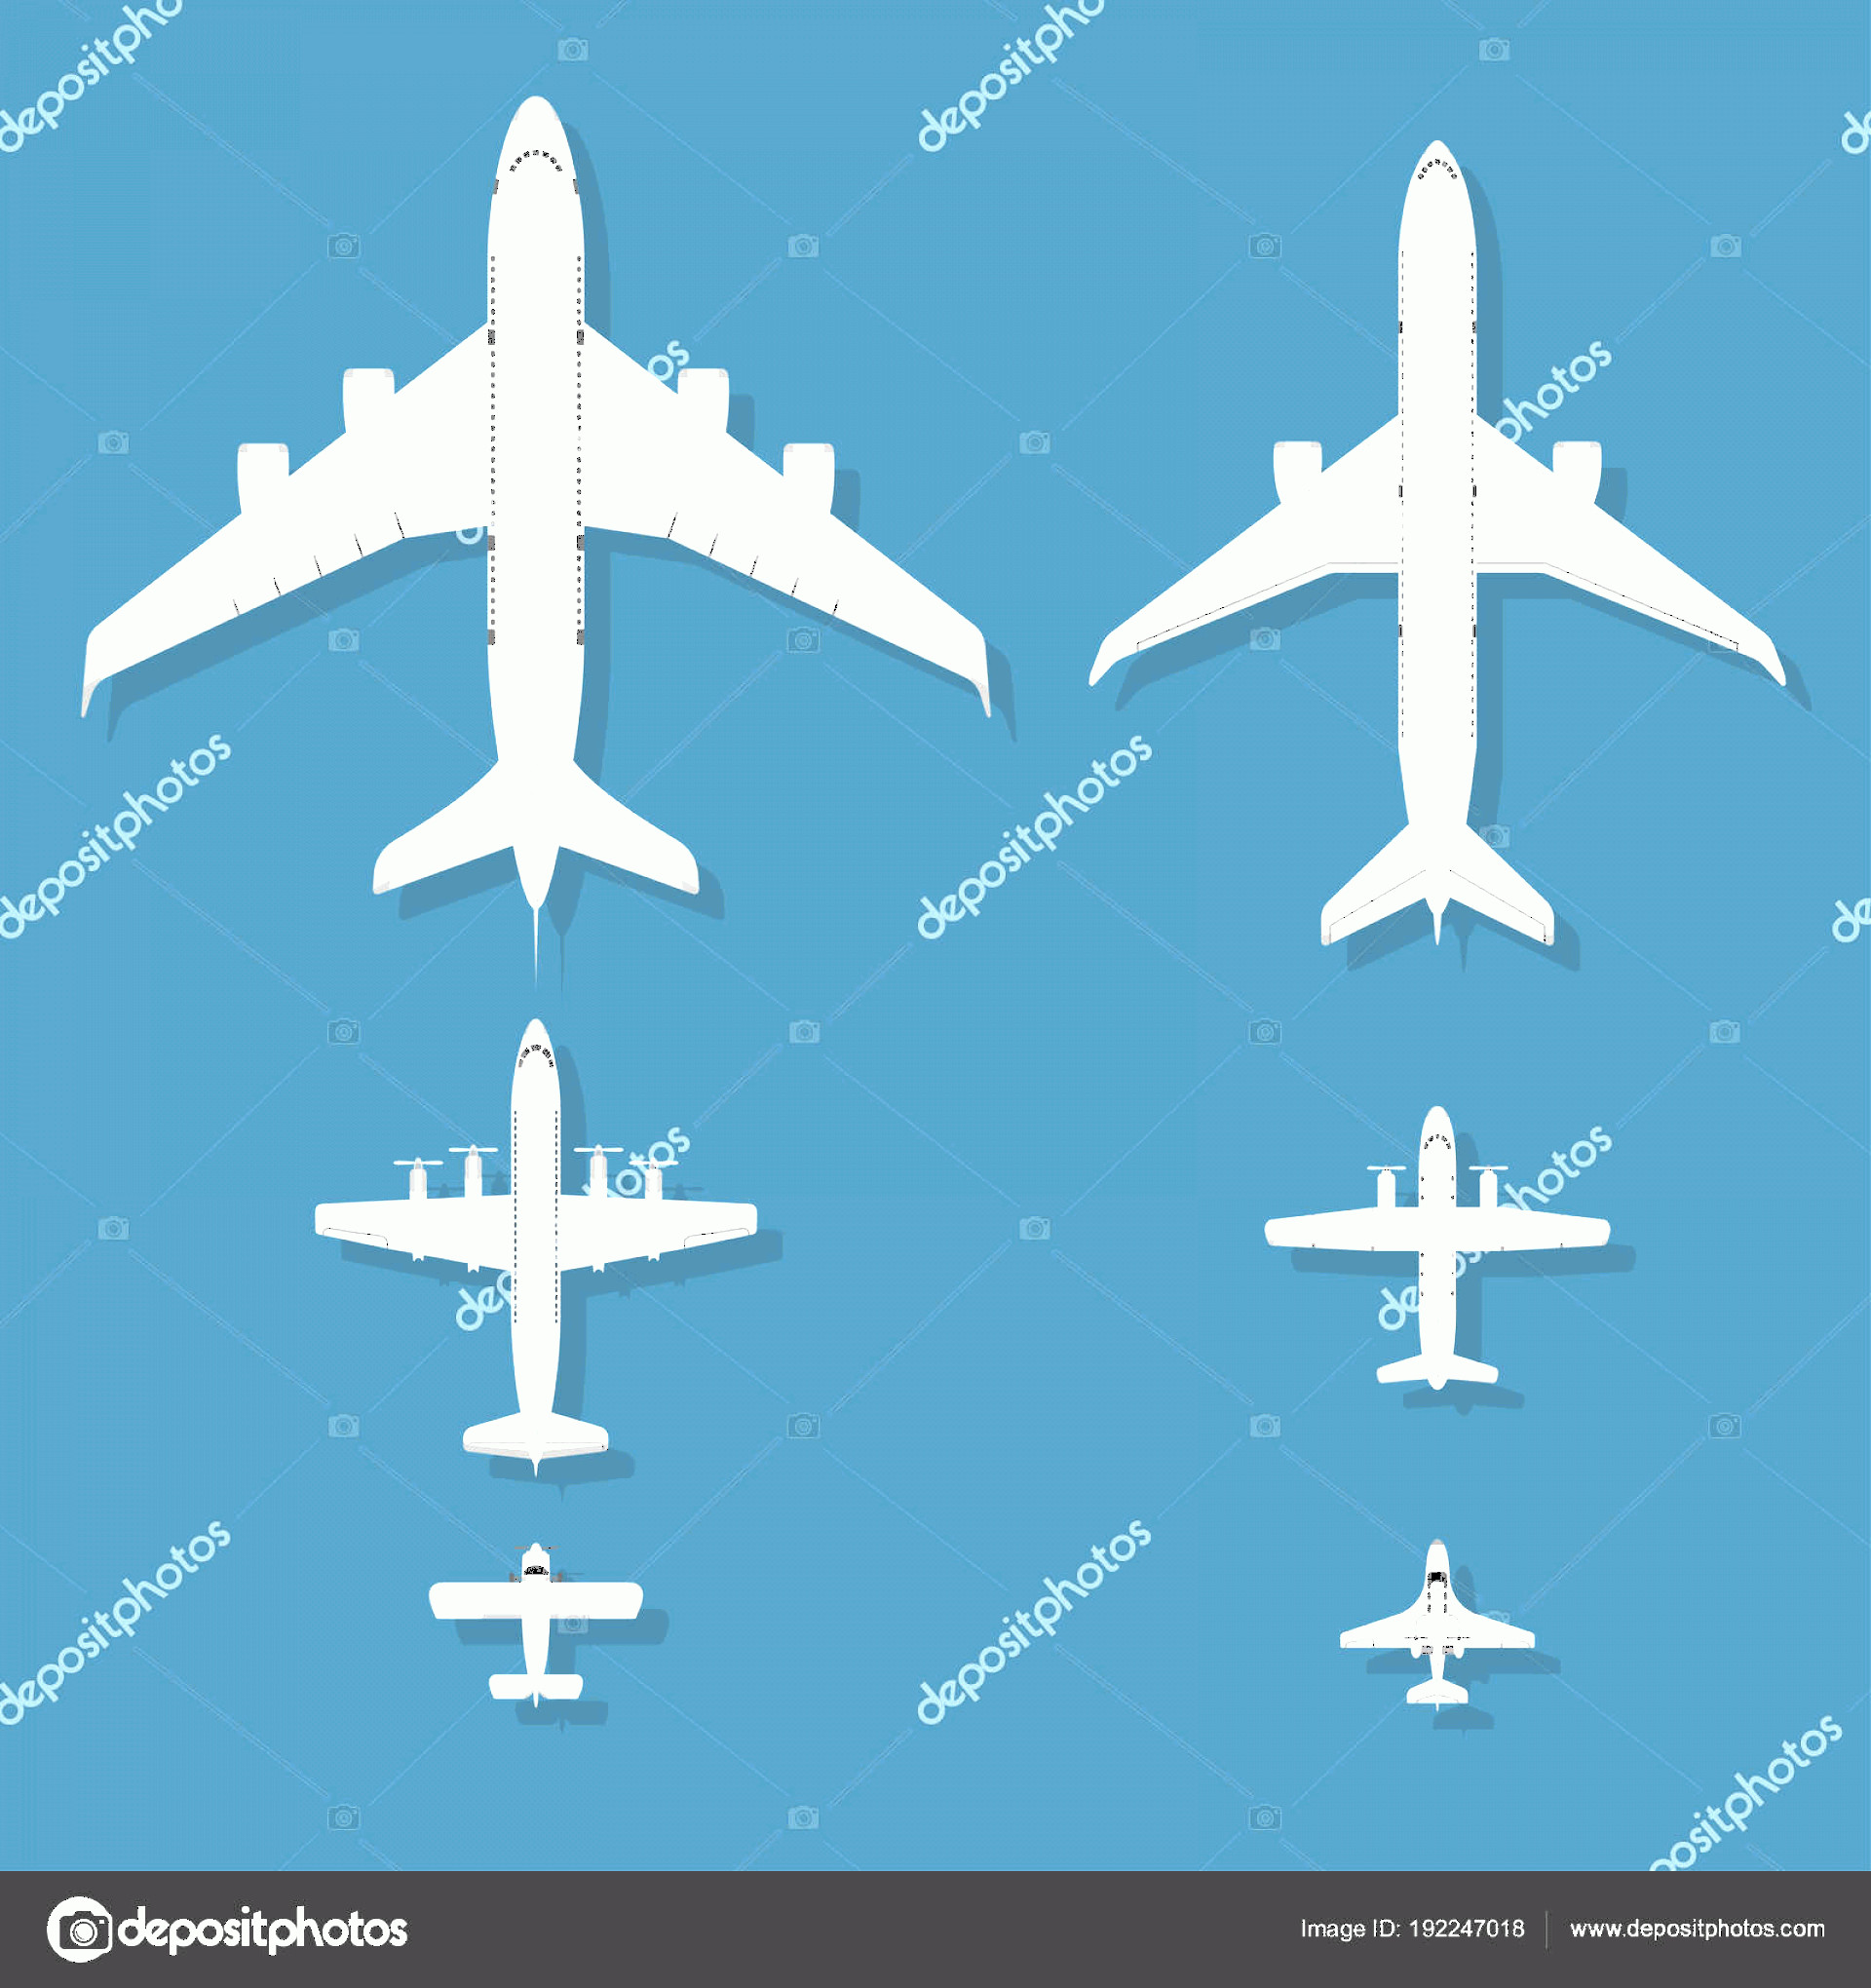 Aviation Vector Designs: Stock Illustration Airplane Vector Illustration Top View